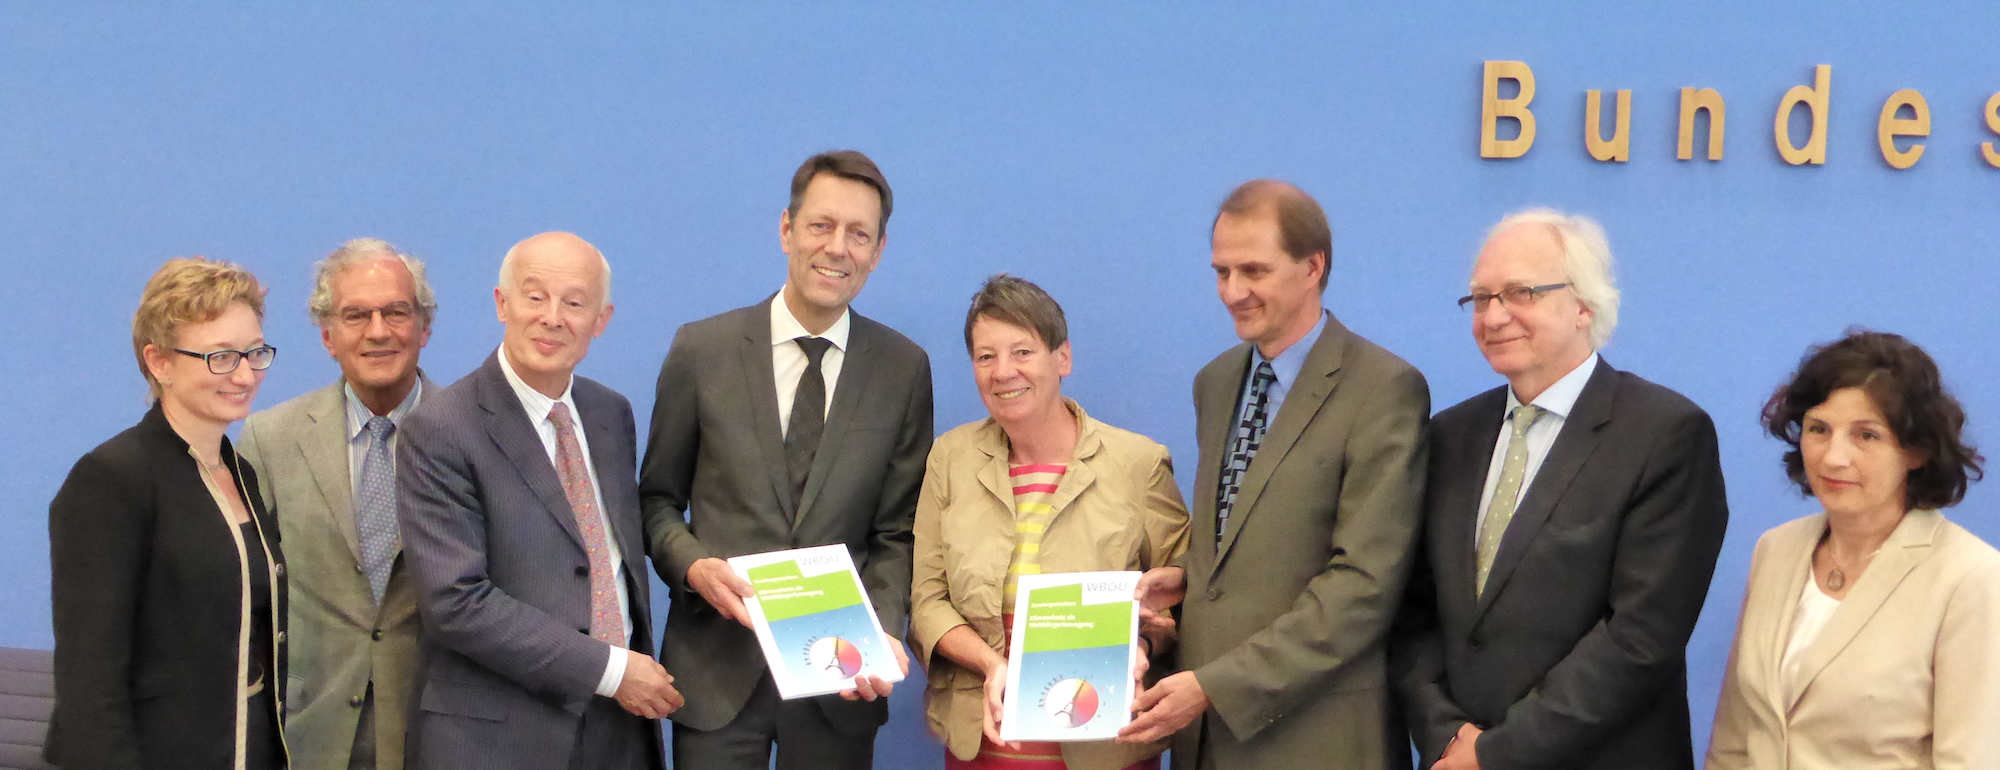 "Presentation of the report ""Climate Protection as a World Citizen Movement"" to the Federal Government"